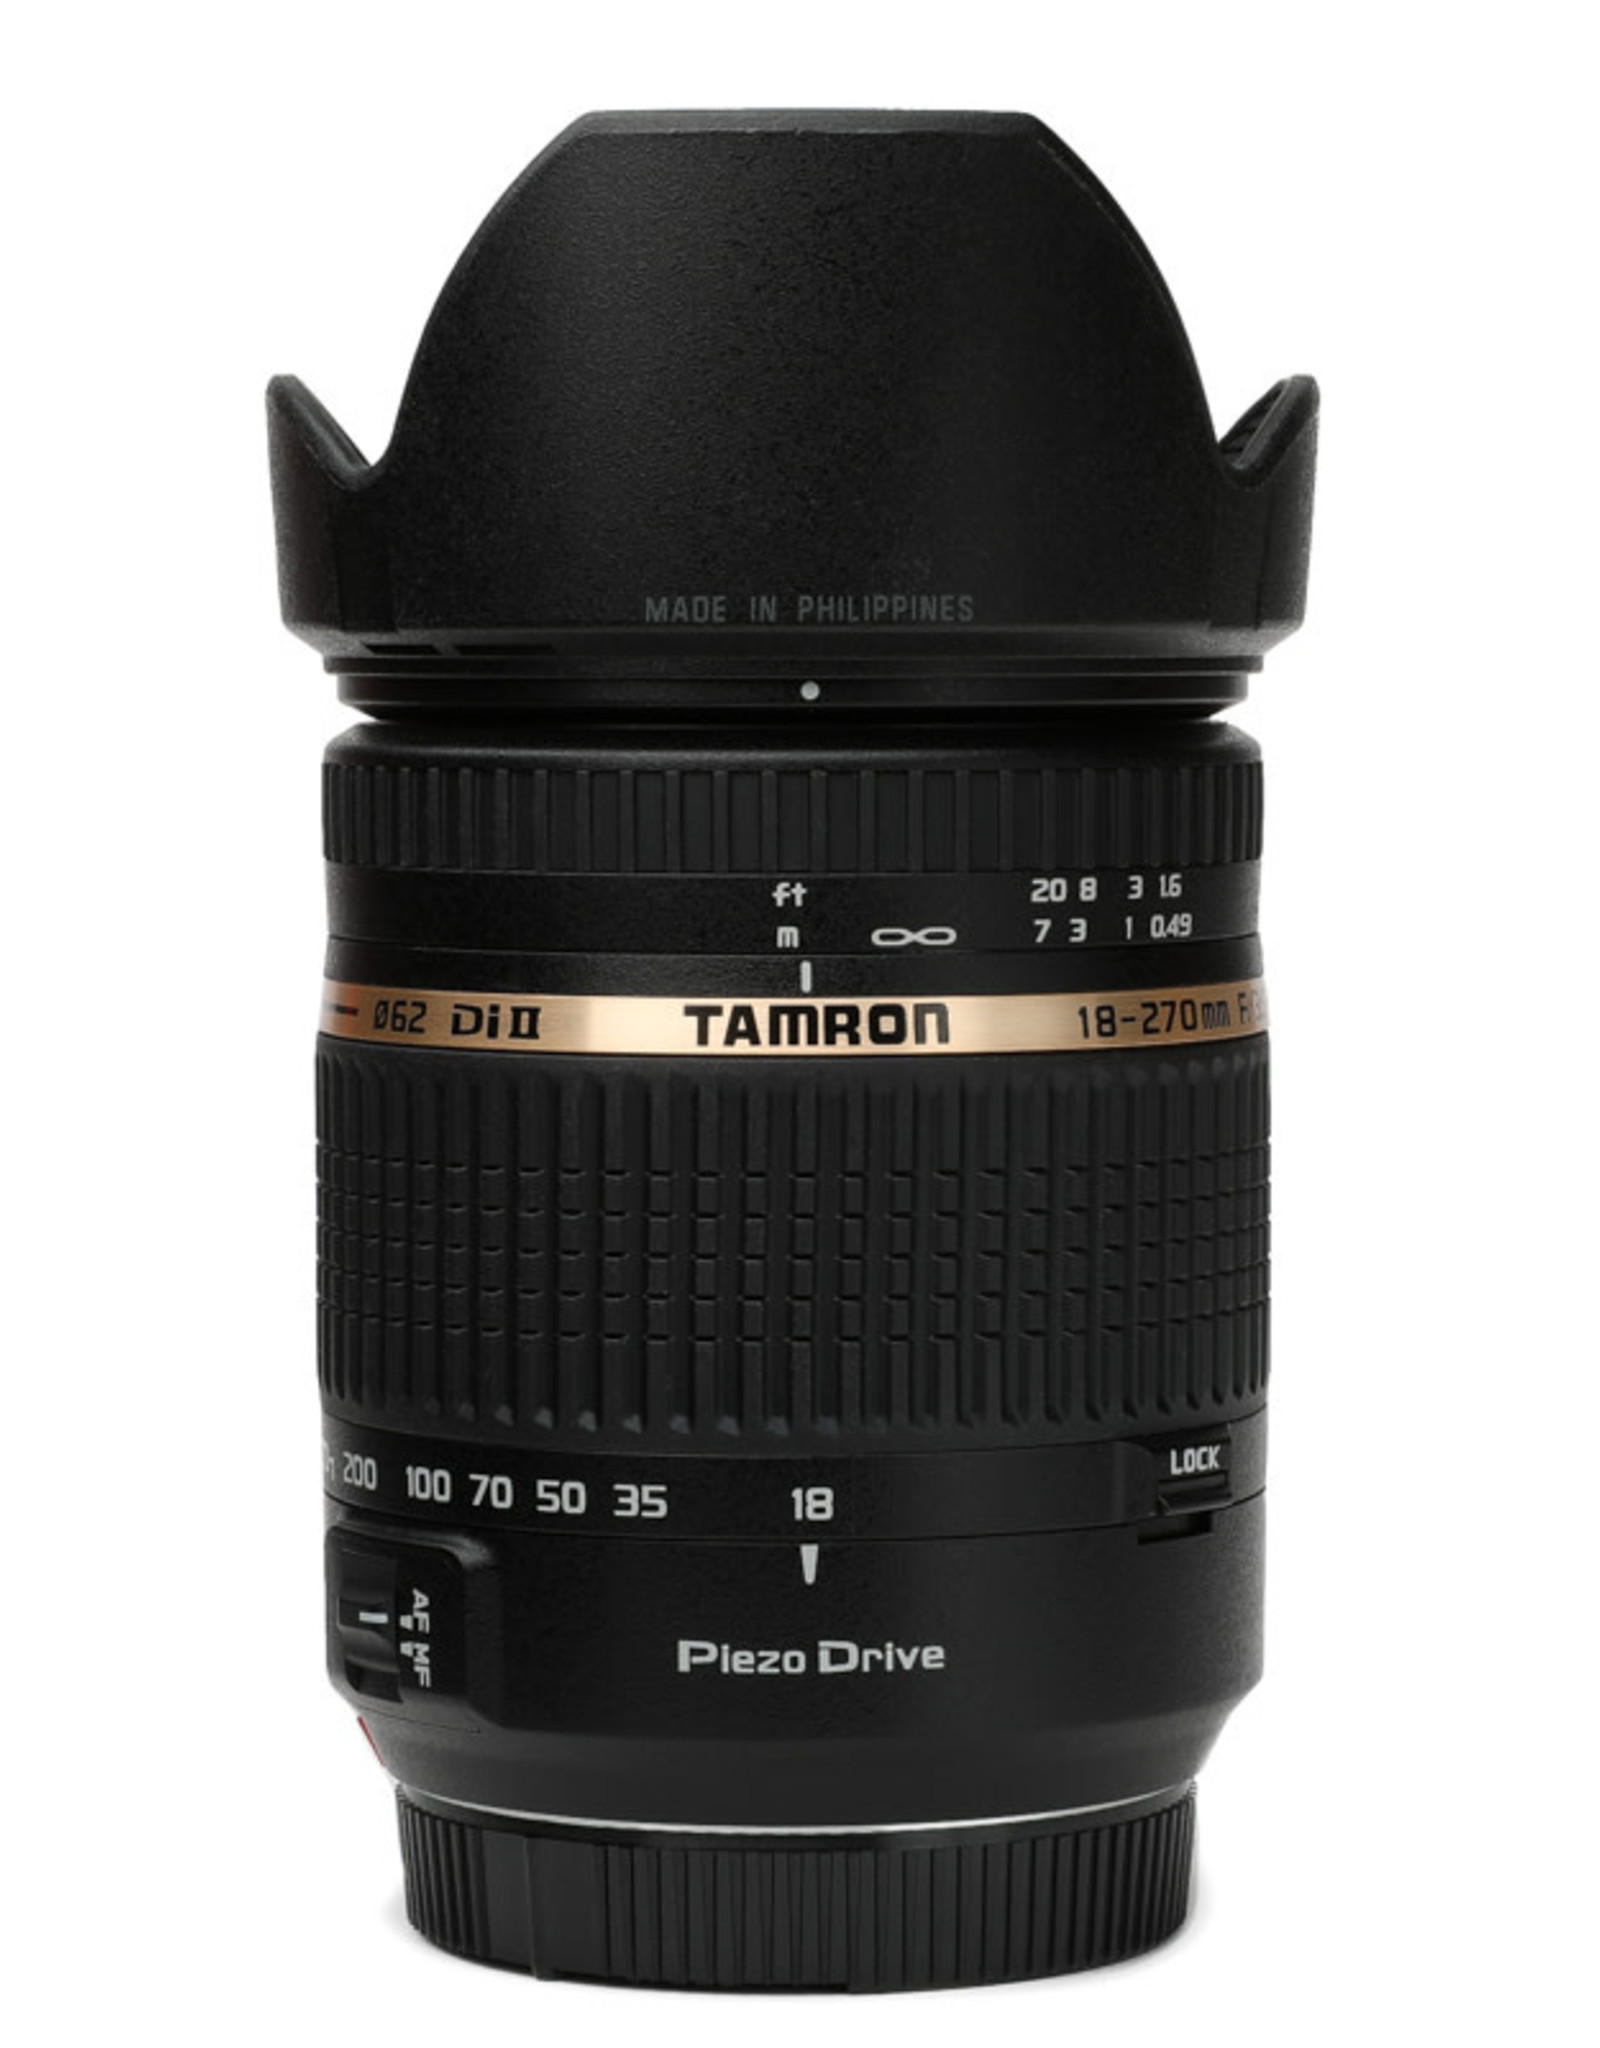 Tamron Tamron 18-270mm F/3.5-6.3 Di II PZD Lens for Sony A